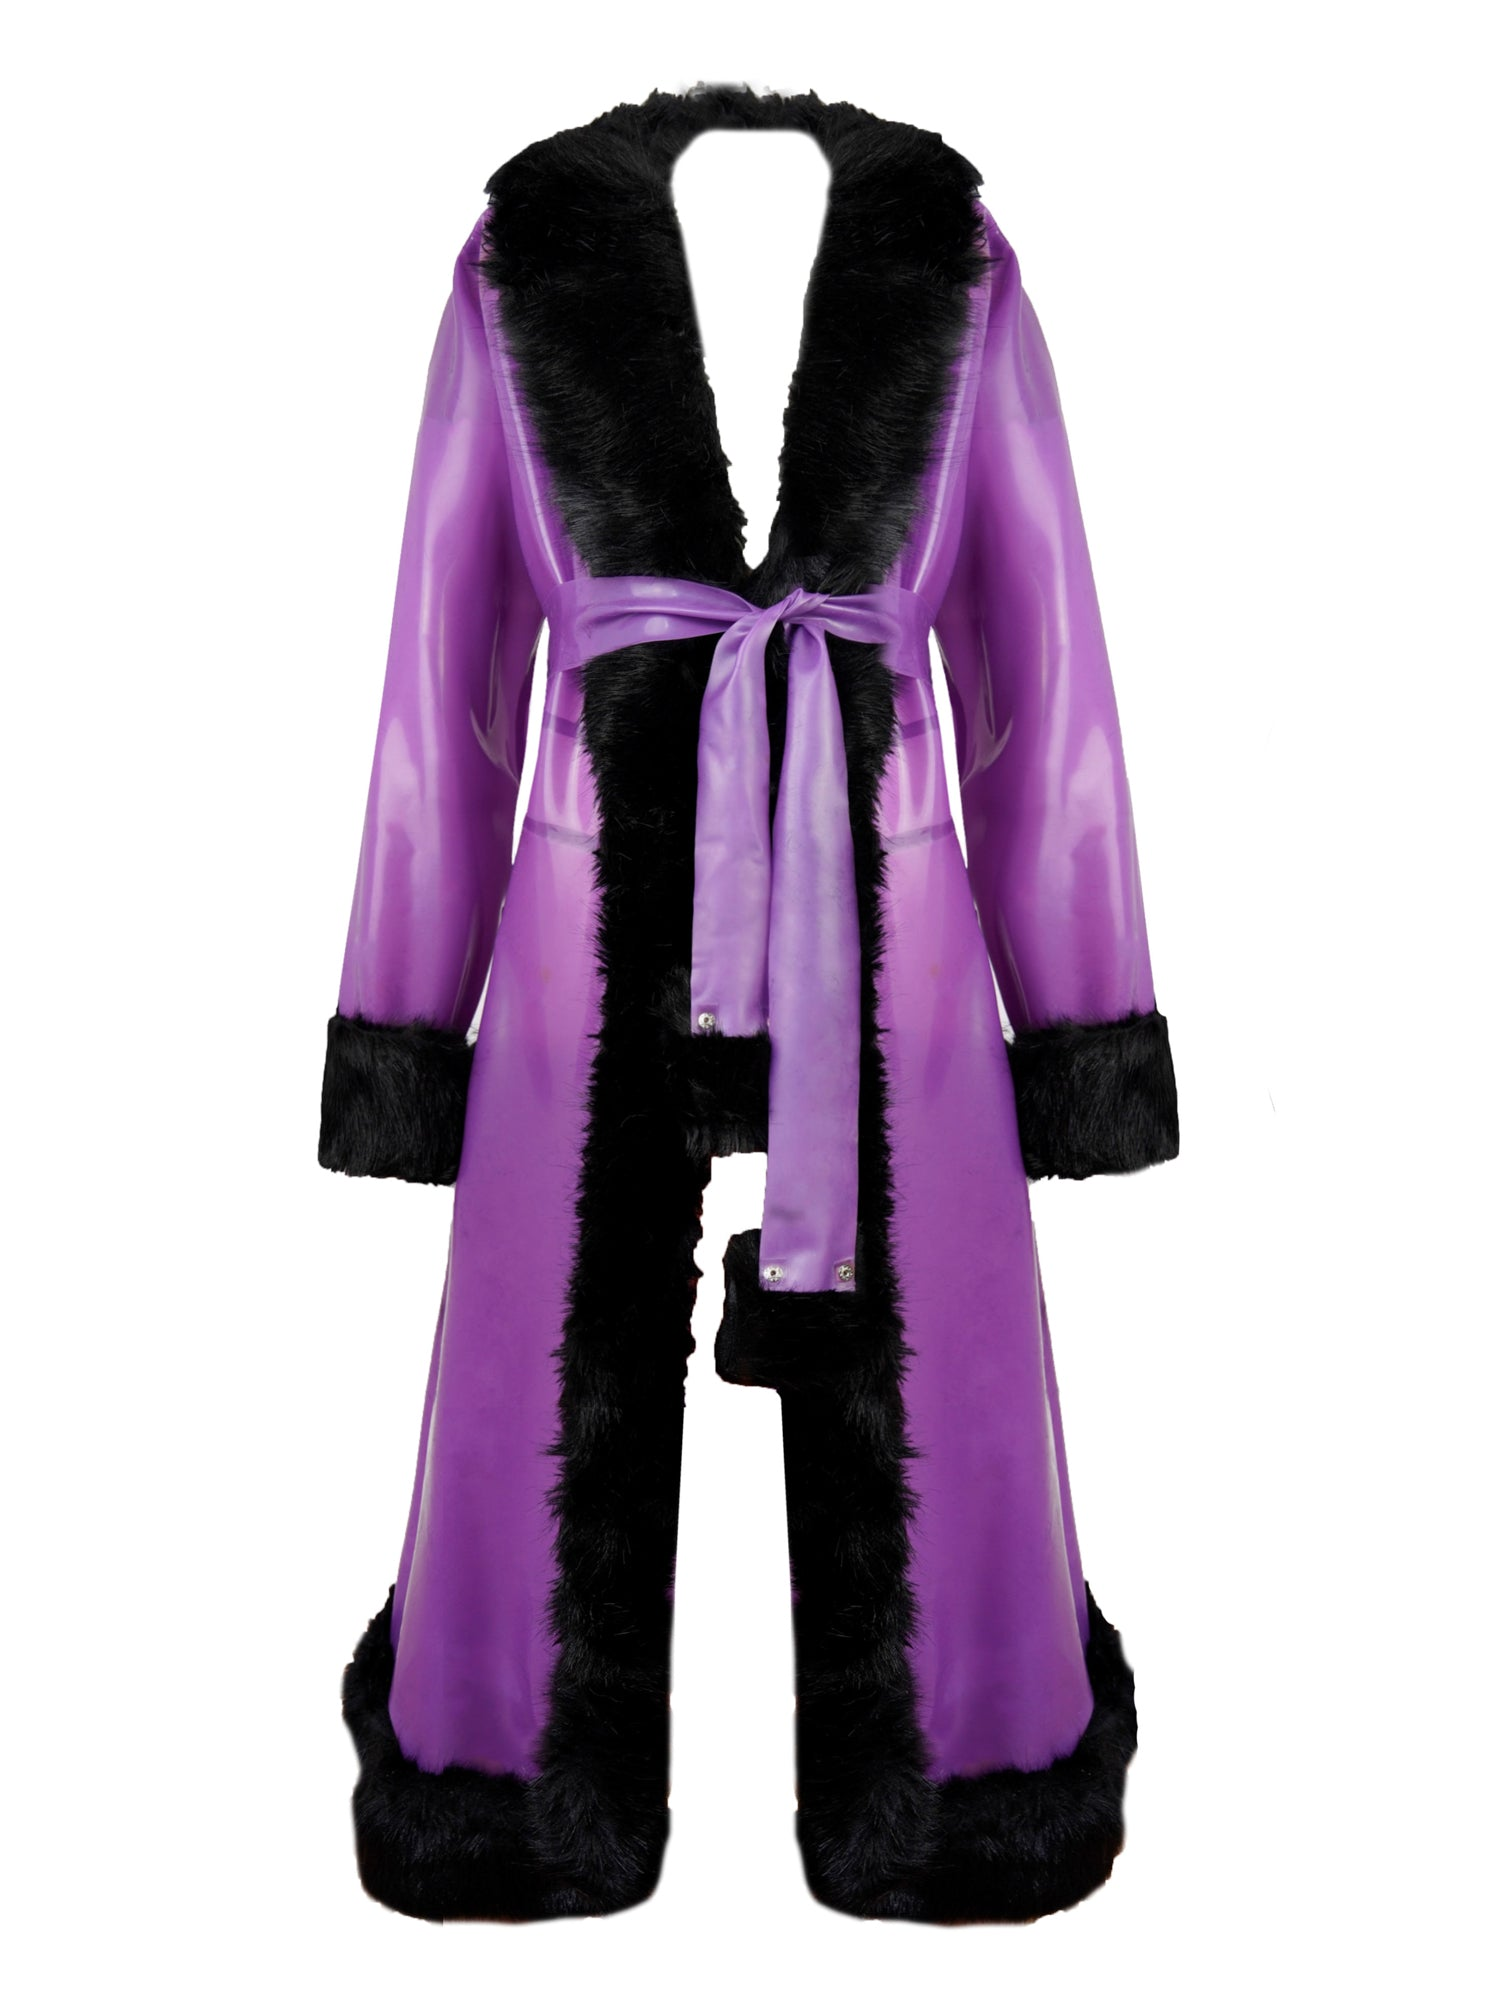 Studio Fclx Latex Fur Coat